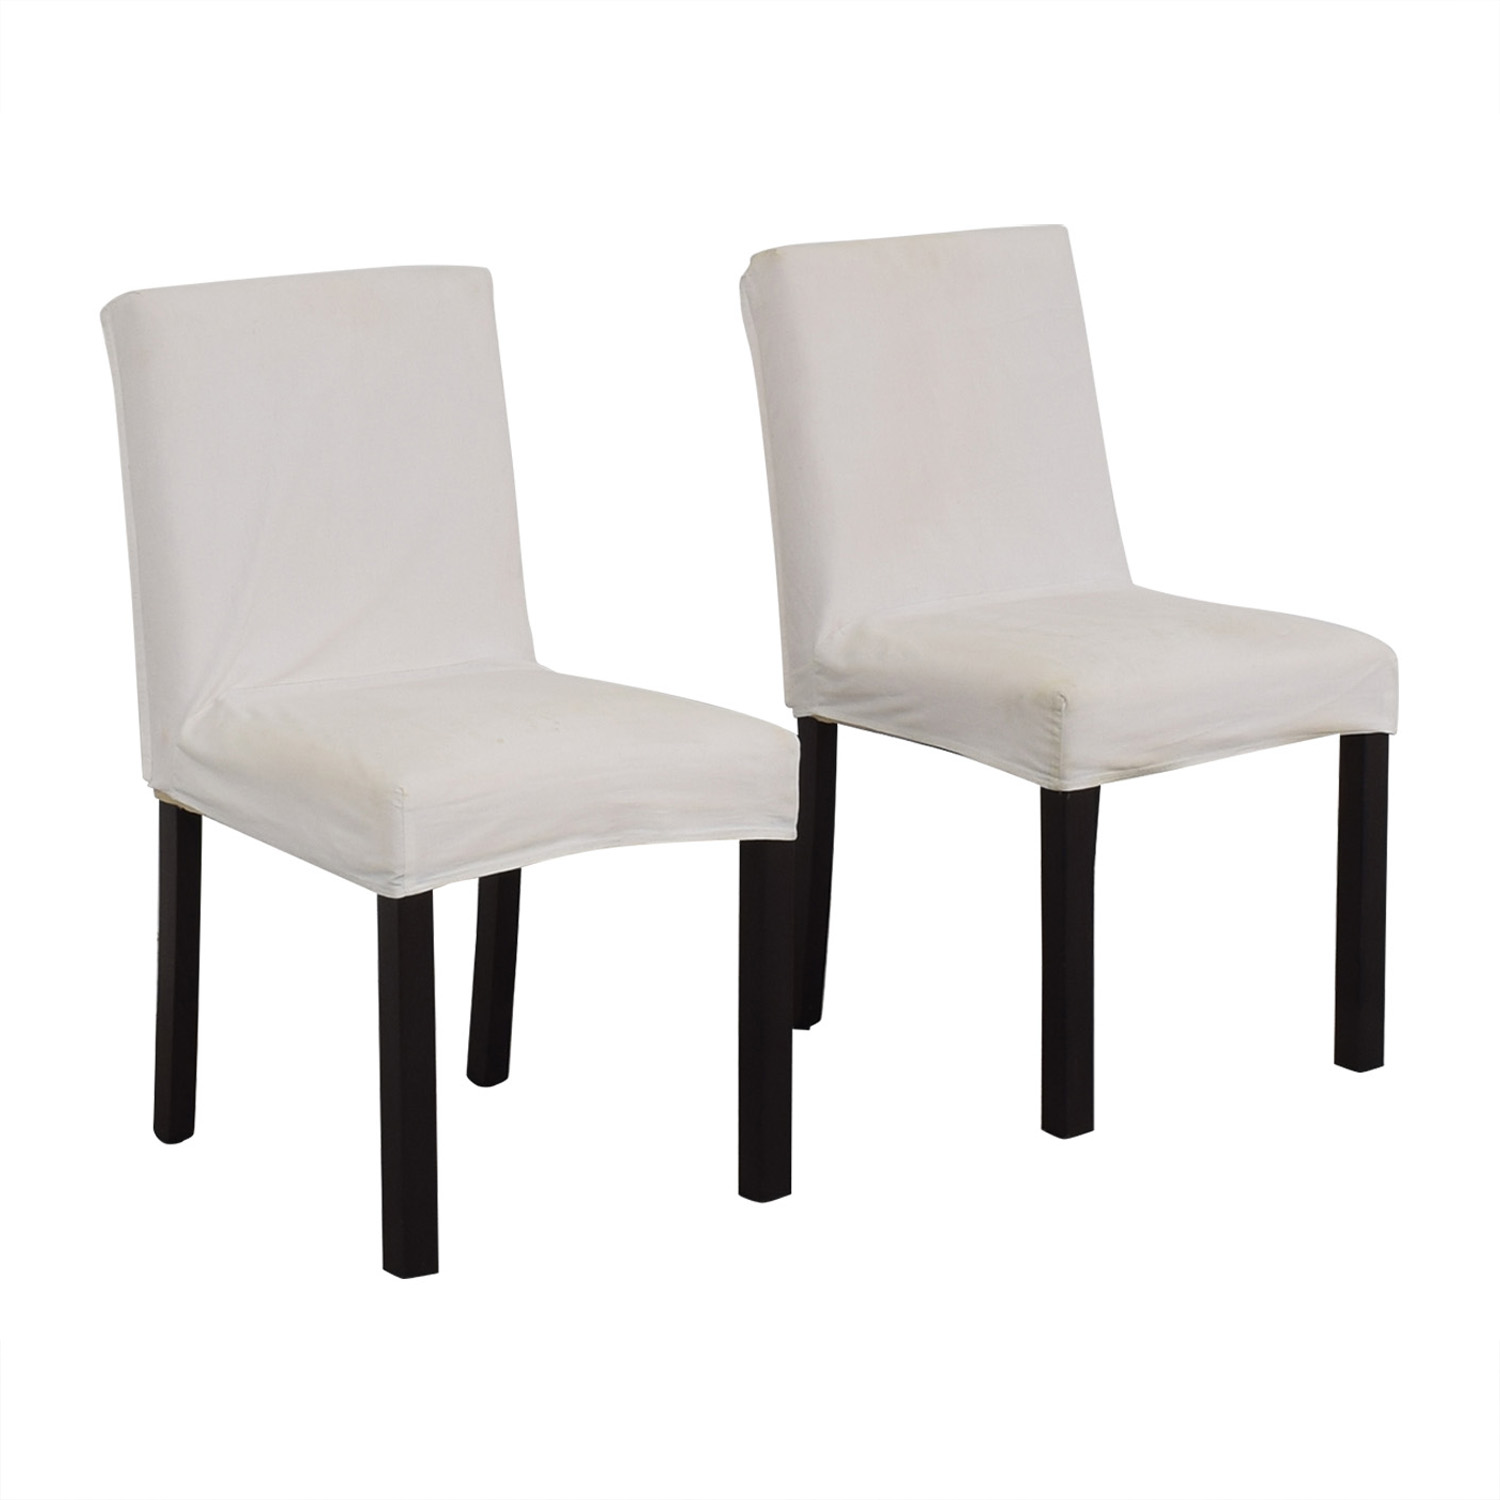 Crate & Barrel Crate & Barrel White Chairs used